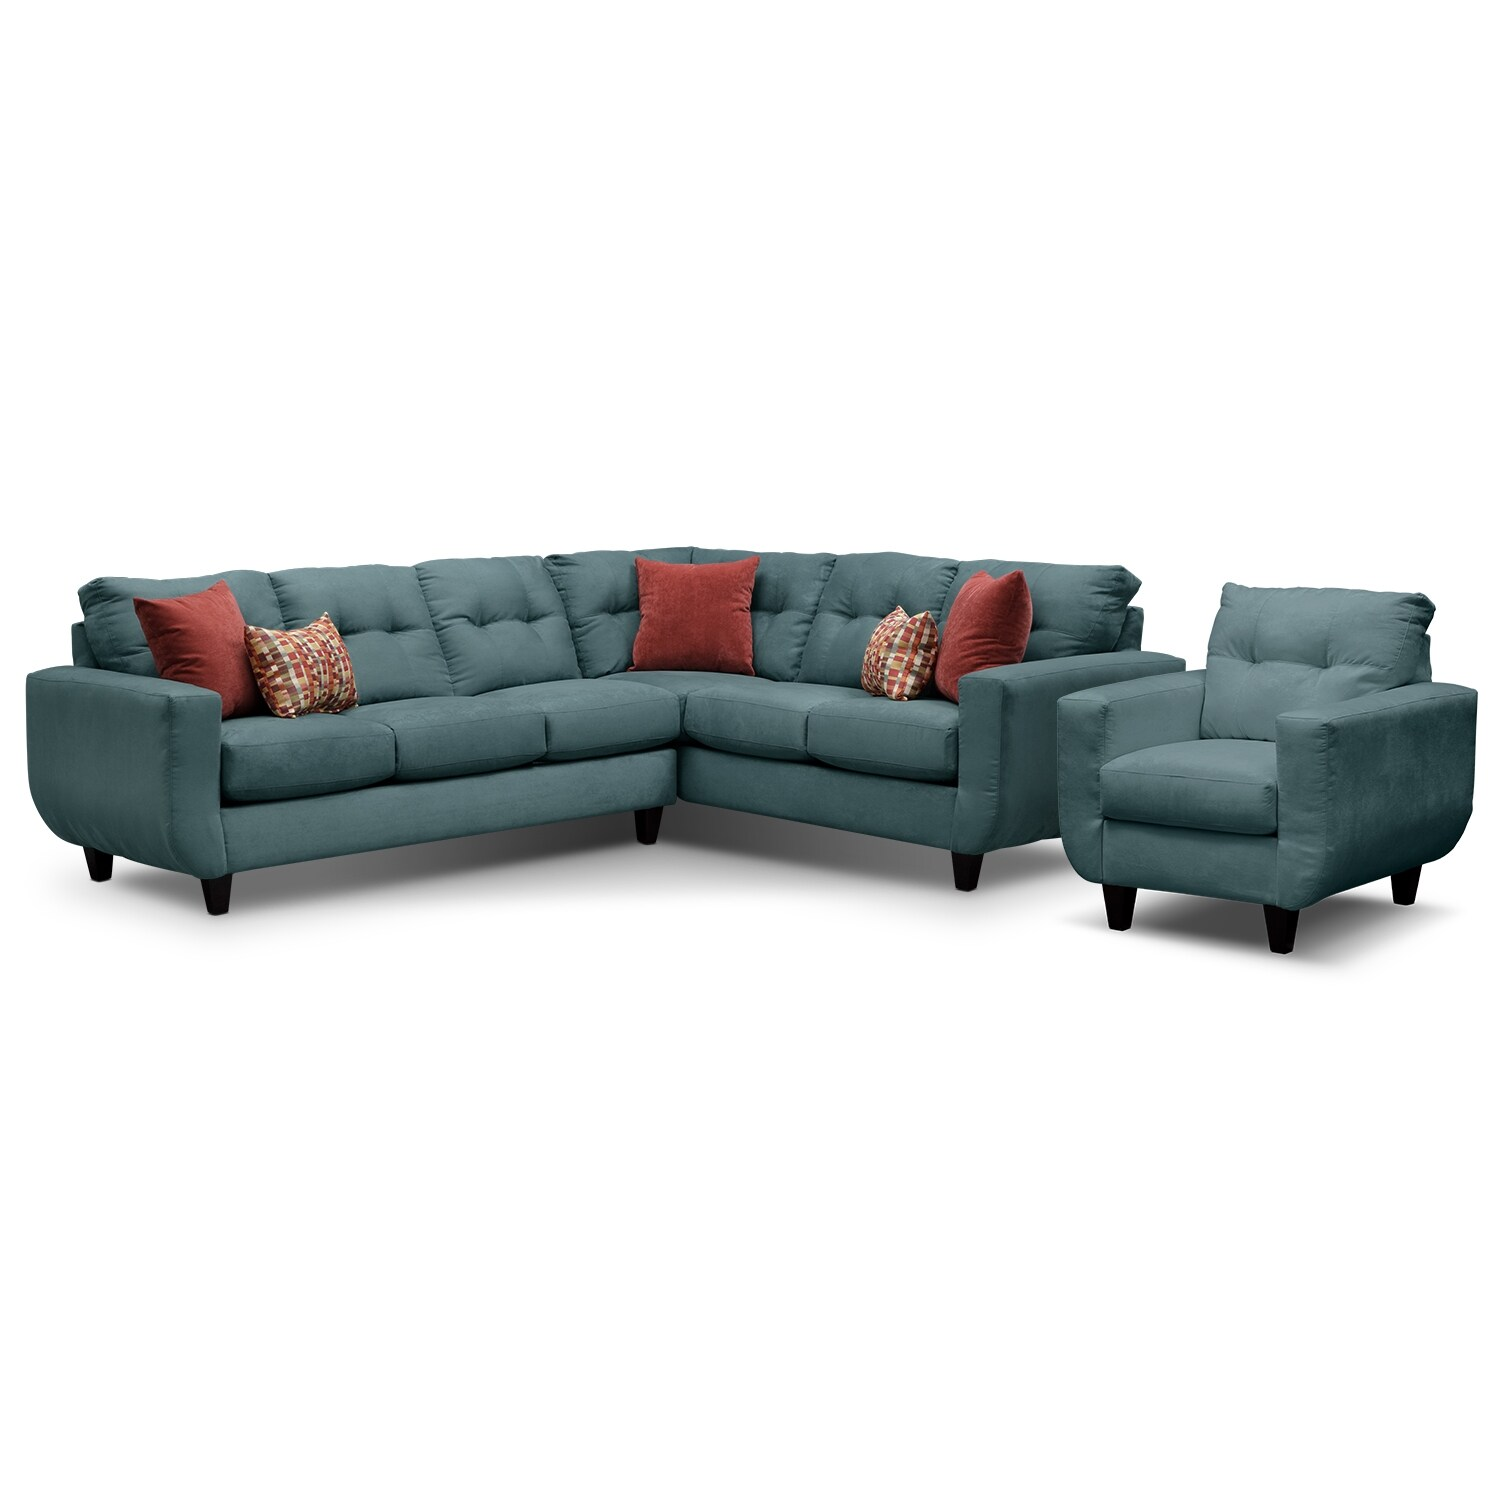 Living Room Furniture - West Village Blue II 2 Pc. Sectional and Chair